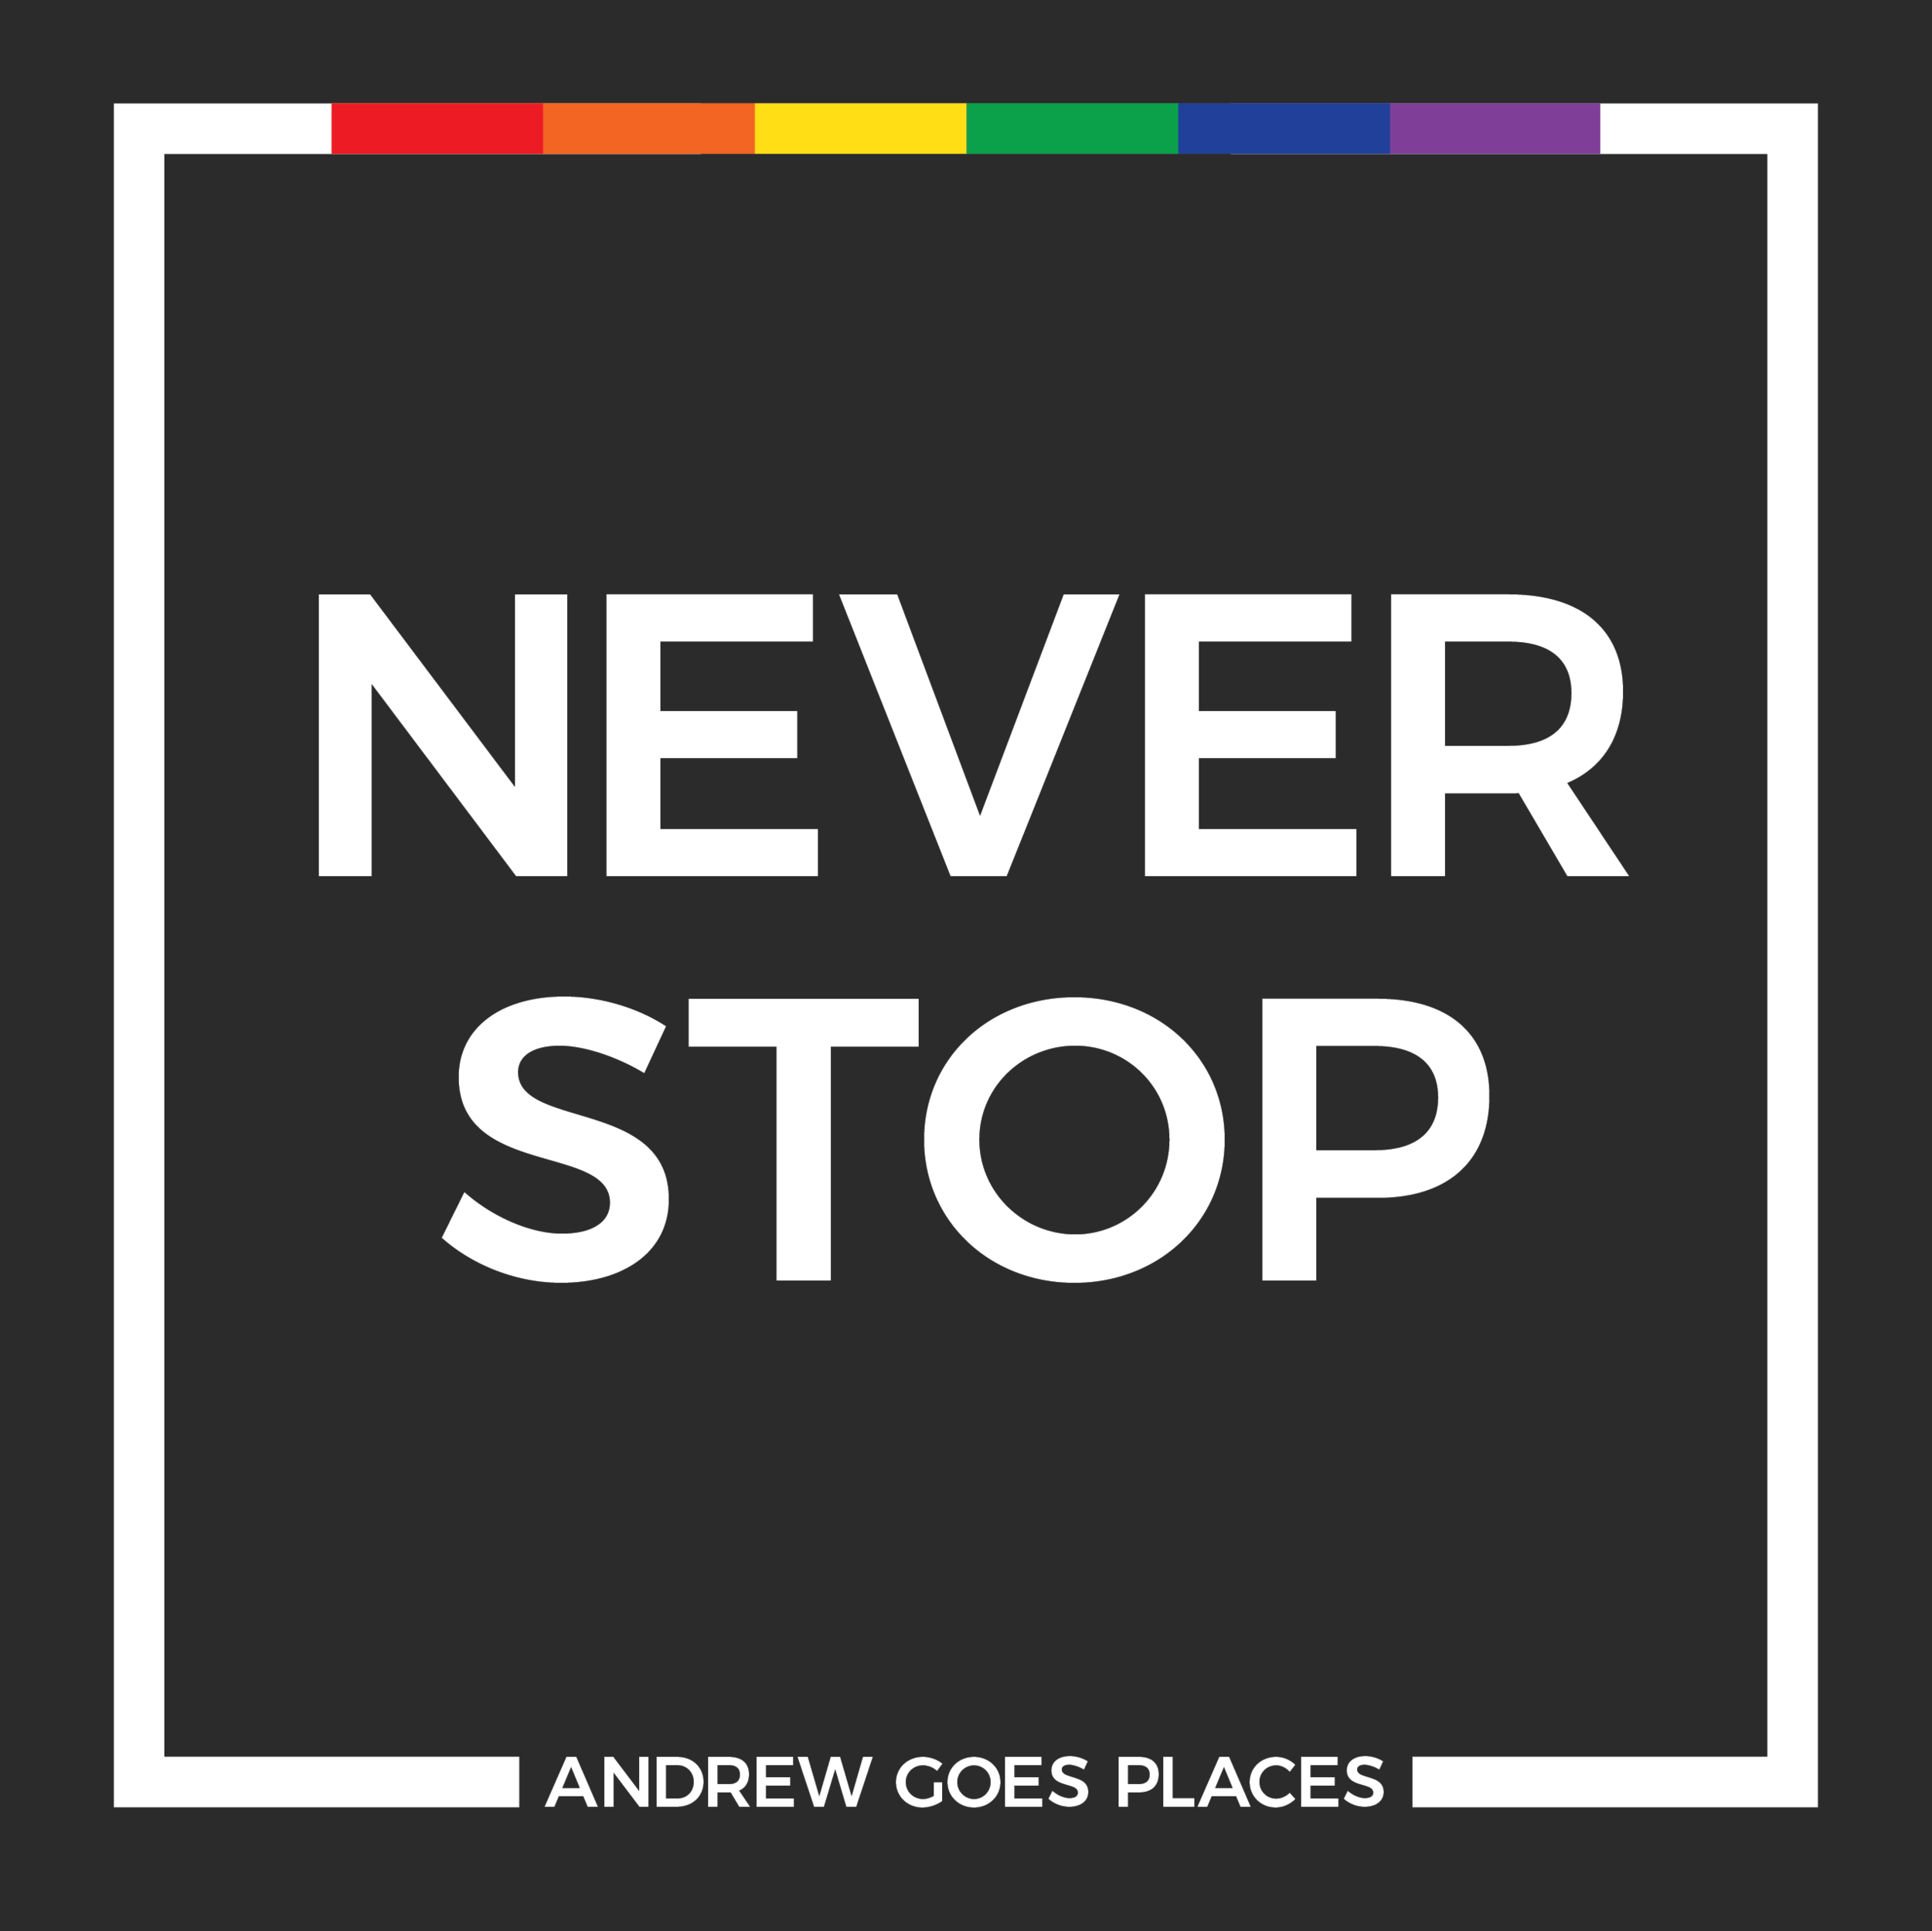 AndrewGoesPlaces_NeverStopLearning-02.png